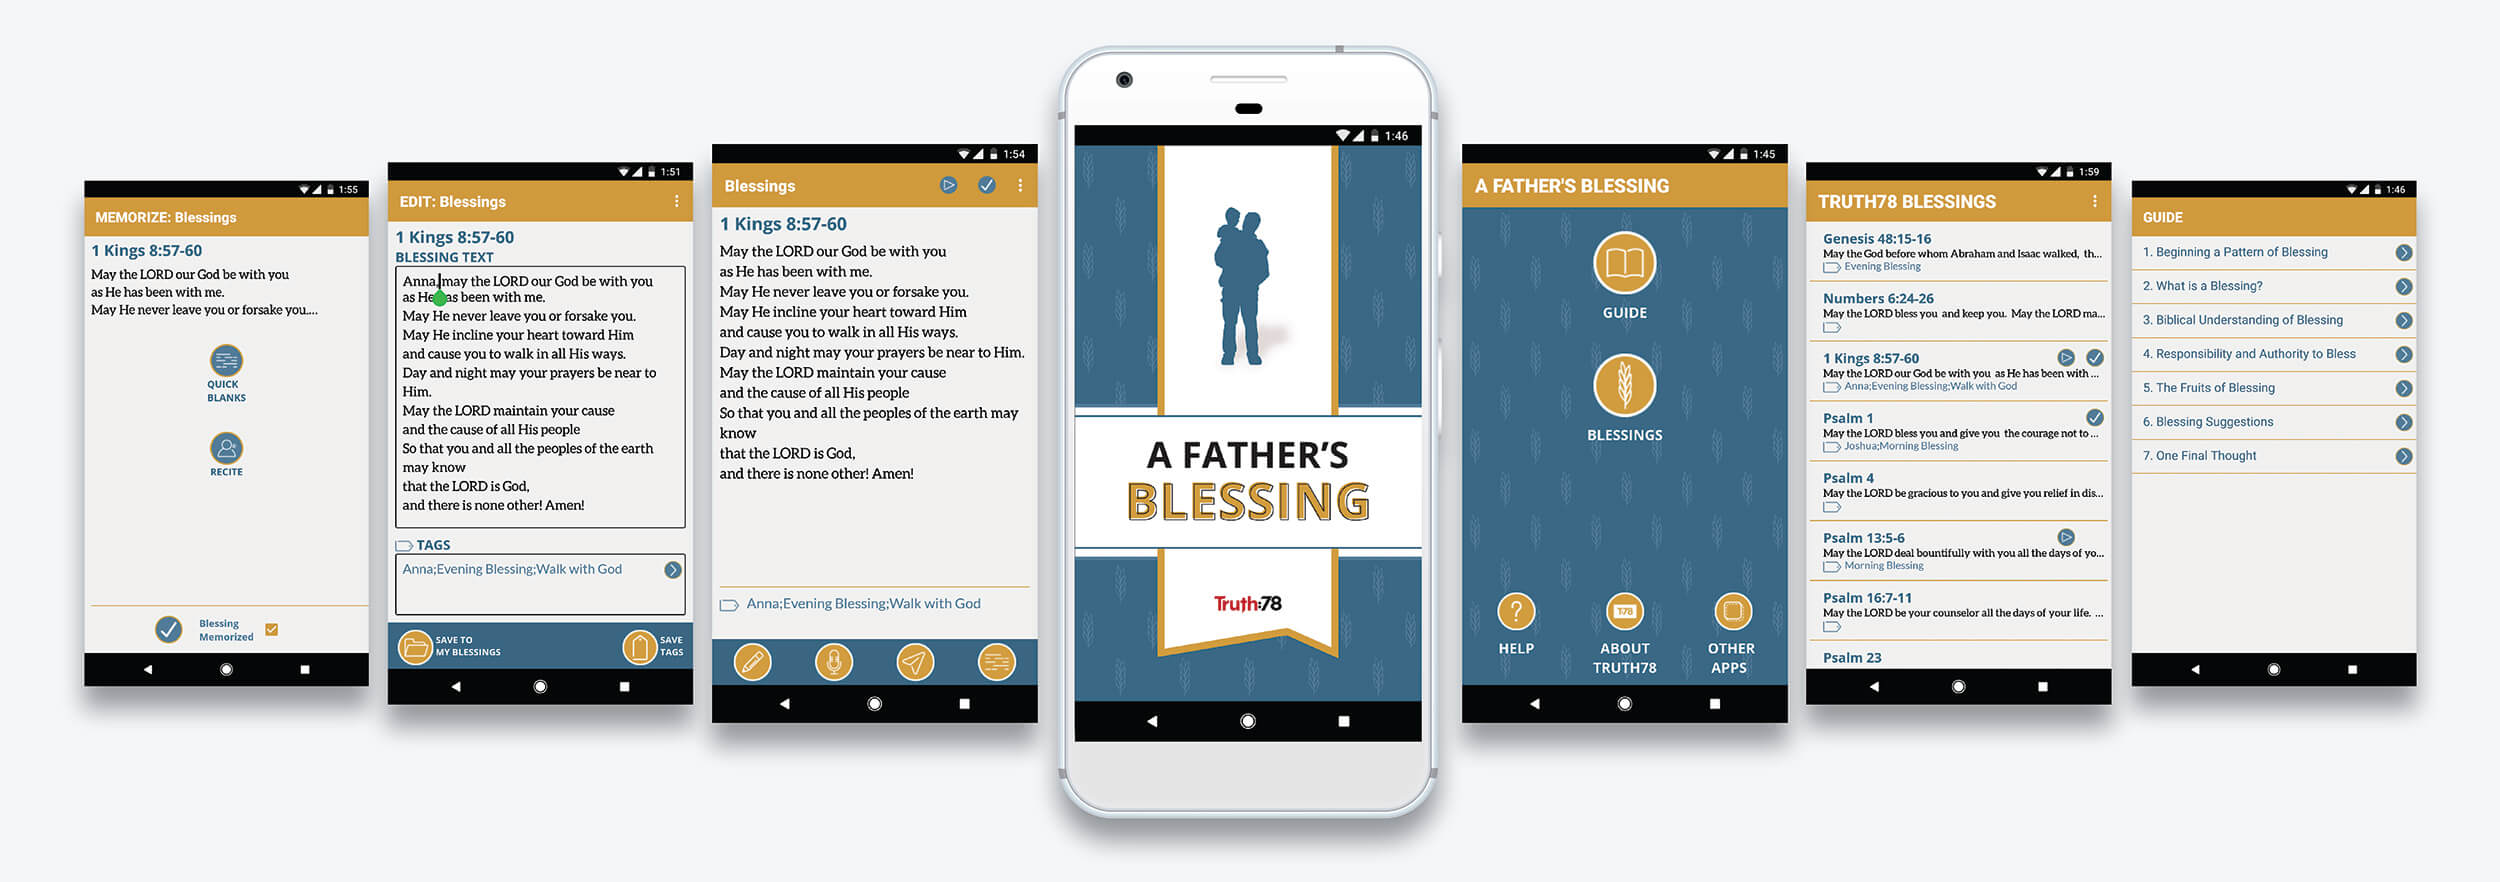 A Father's Blessing App